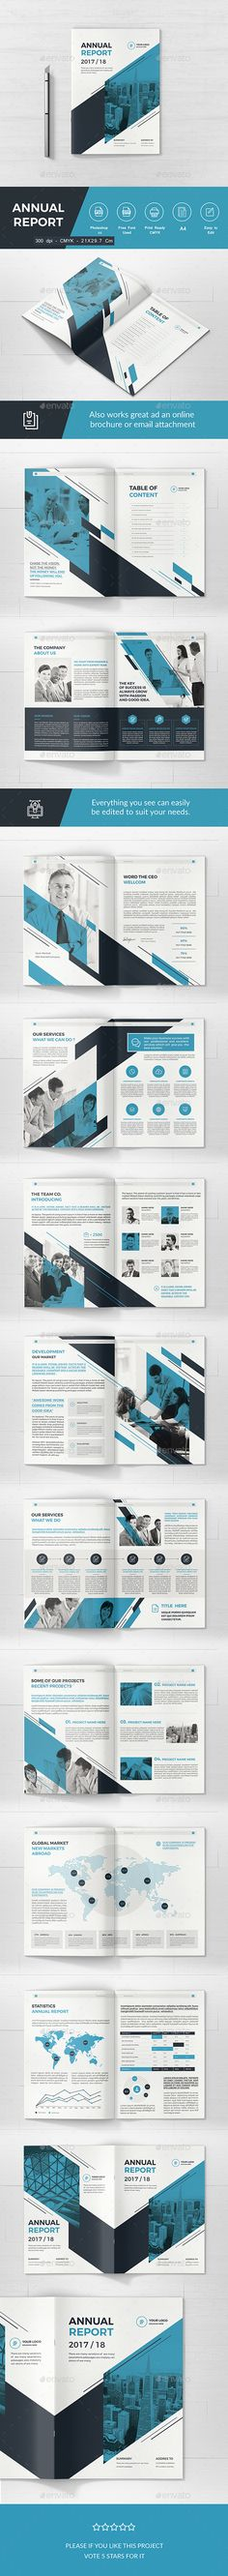 Annual Report - Corporate Brochures Download here: https://graphicriver.net/item/annual-report/19981843?https://graphicriver.net/item/annual-report-2018-indesign-template/19990953?ref=classicdesignp